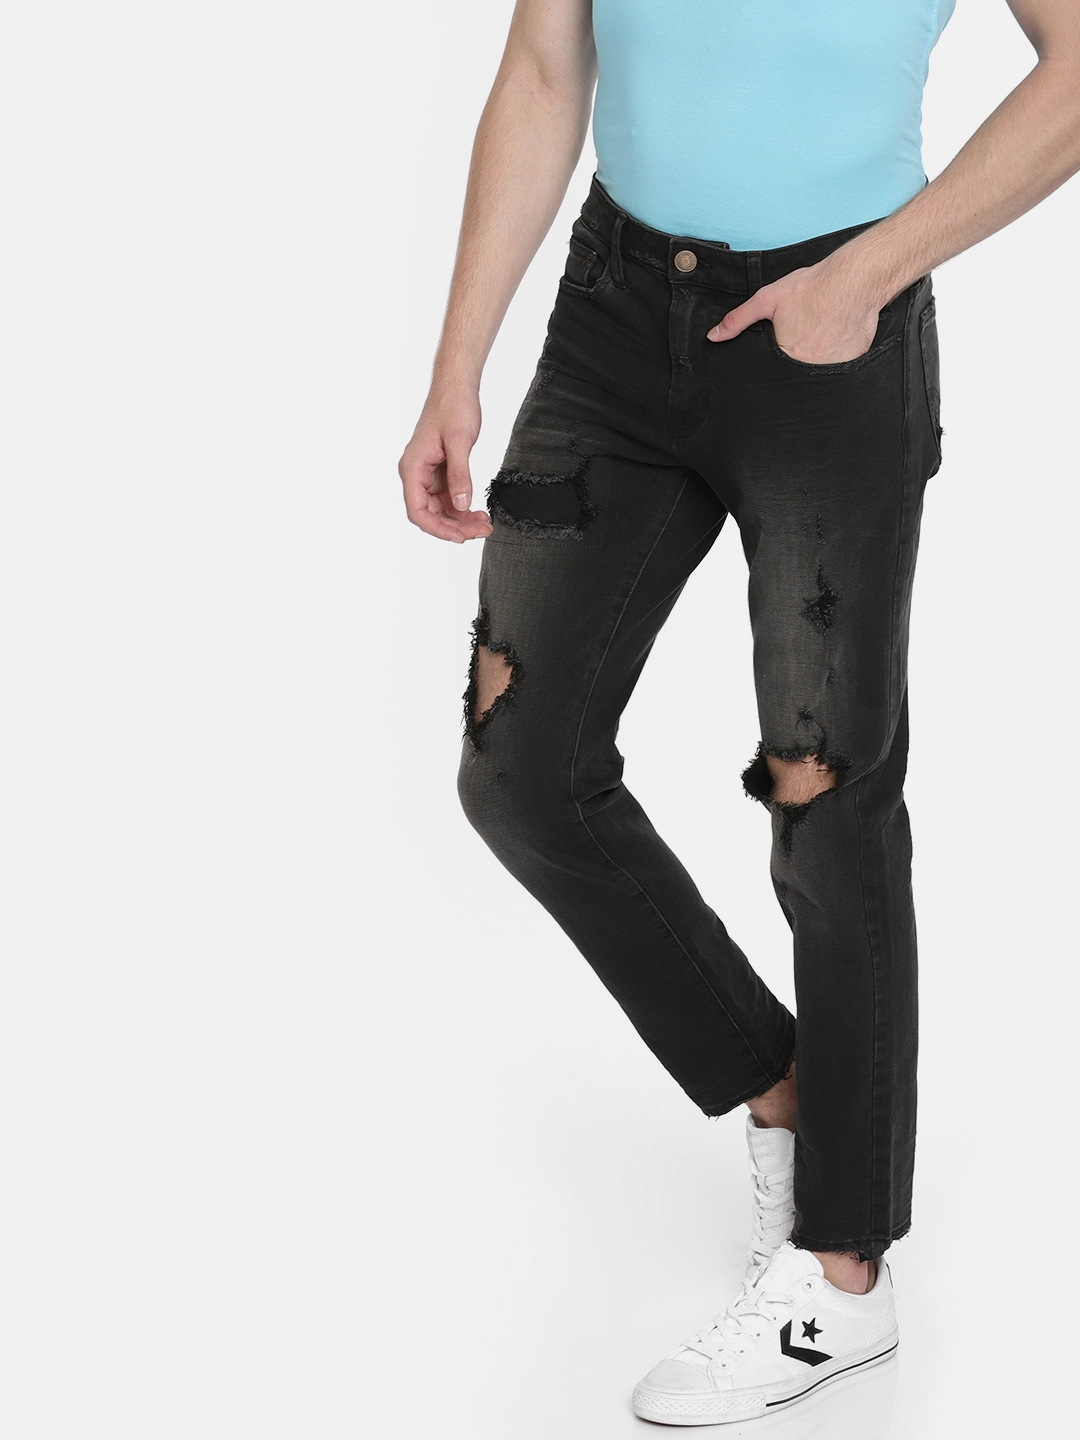 91507ab3 AMERICAN EAGLE OUTFITTERS Black Skinny Fit Mid-Rise Mildly Distressed  Stretchable Jeans